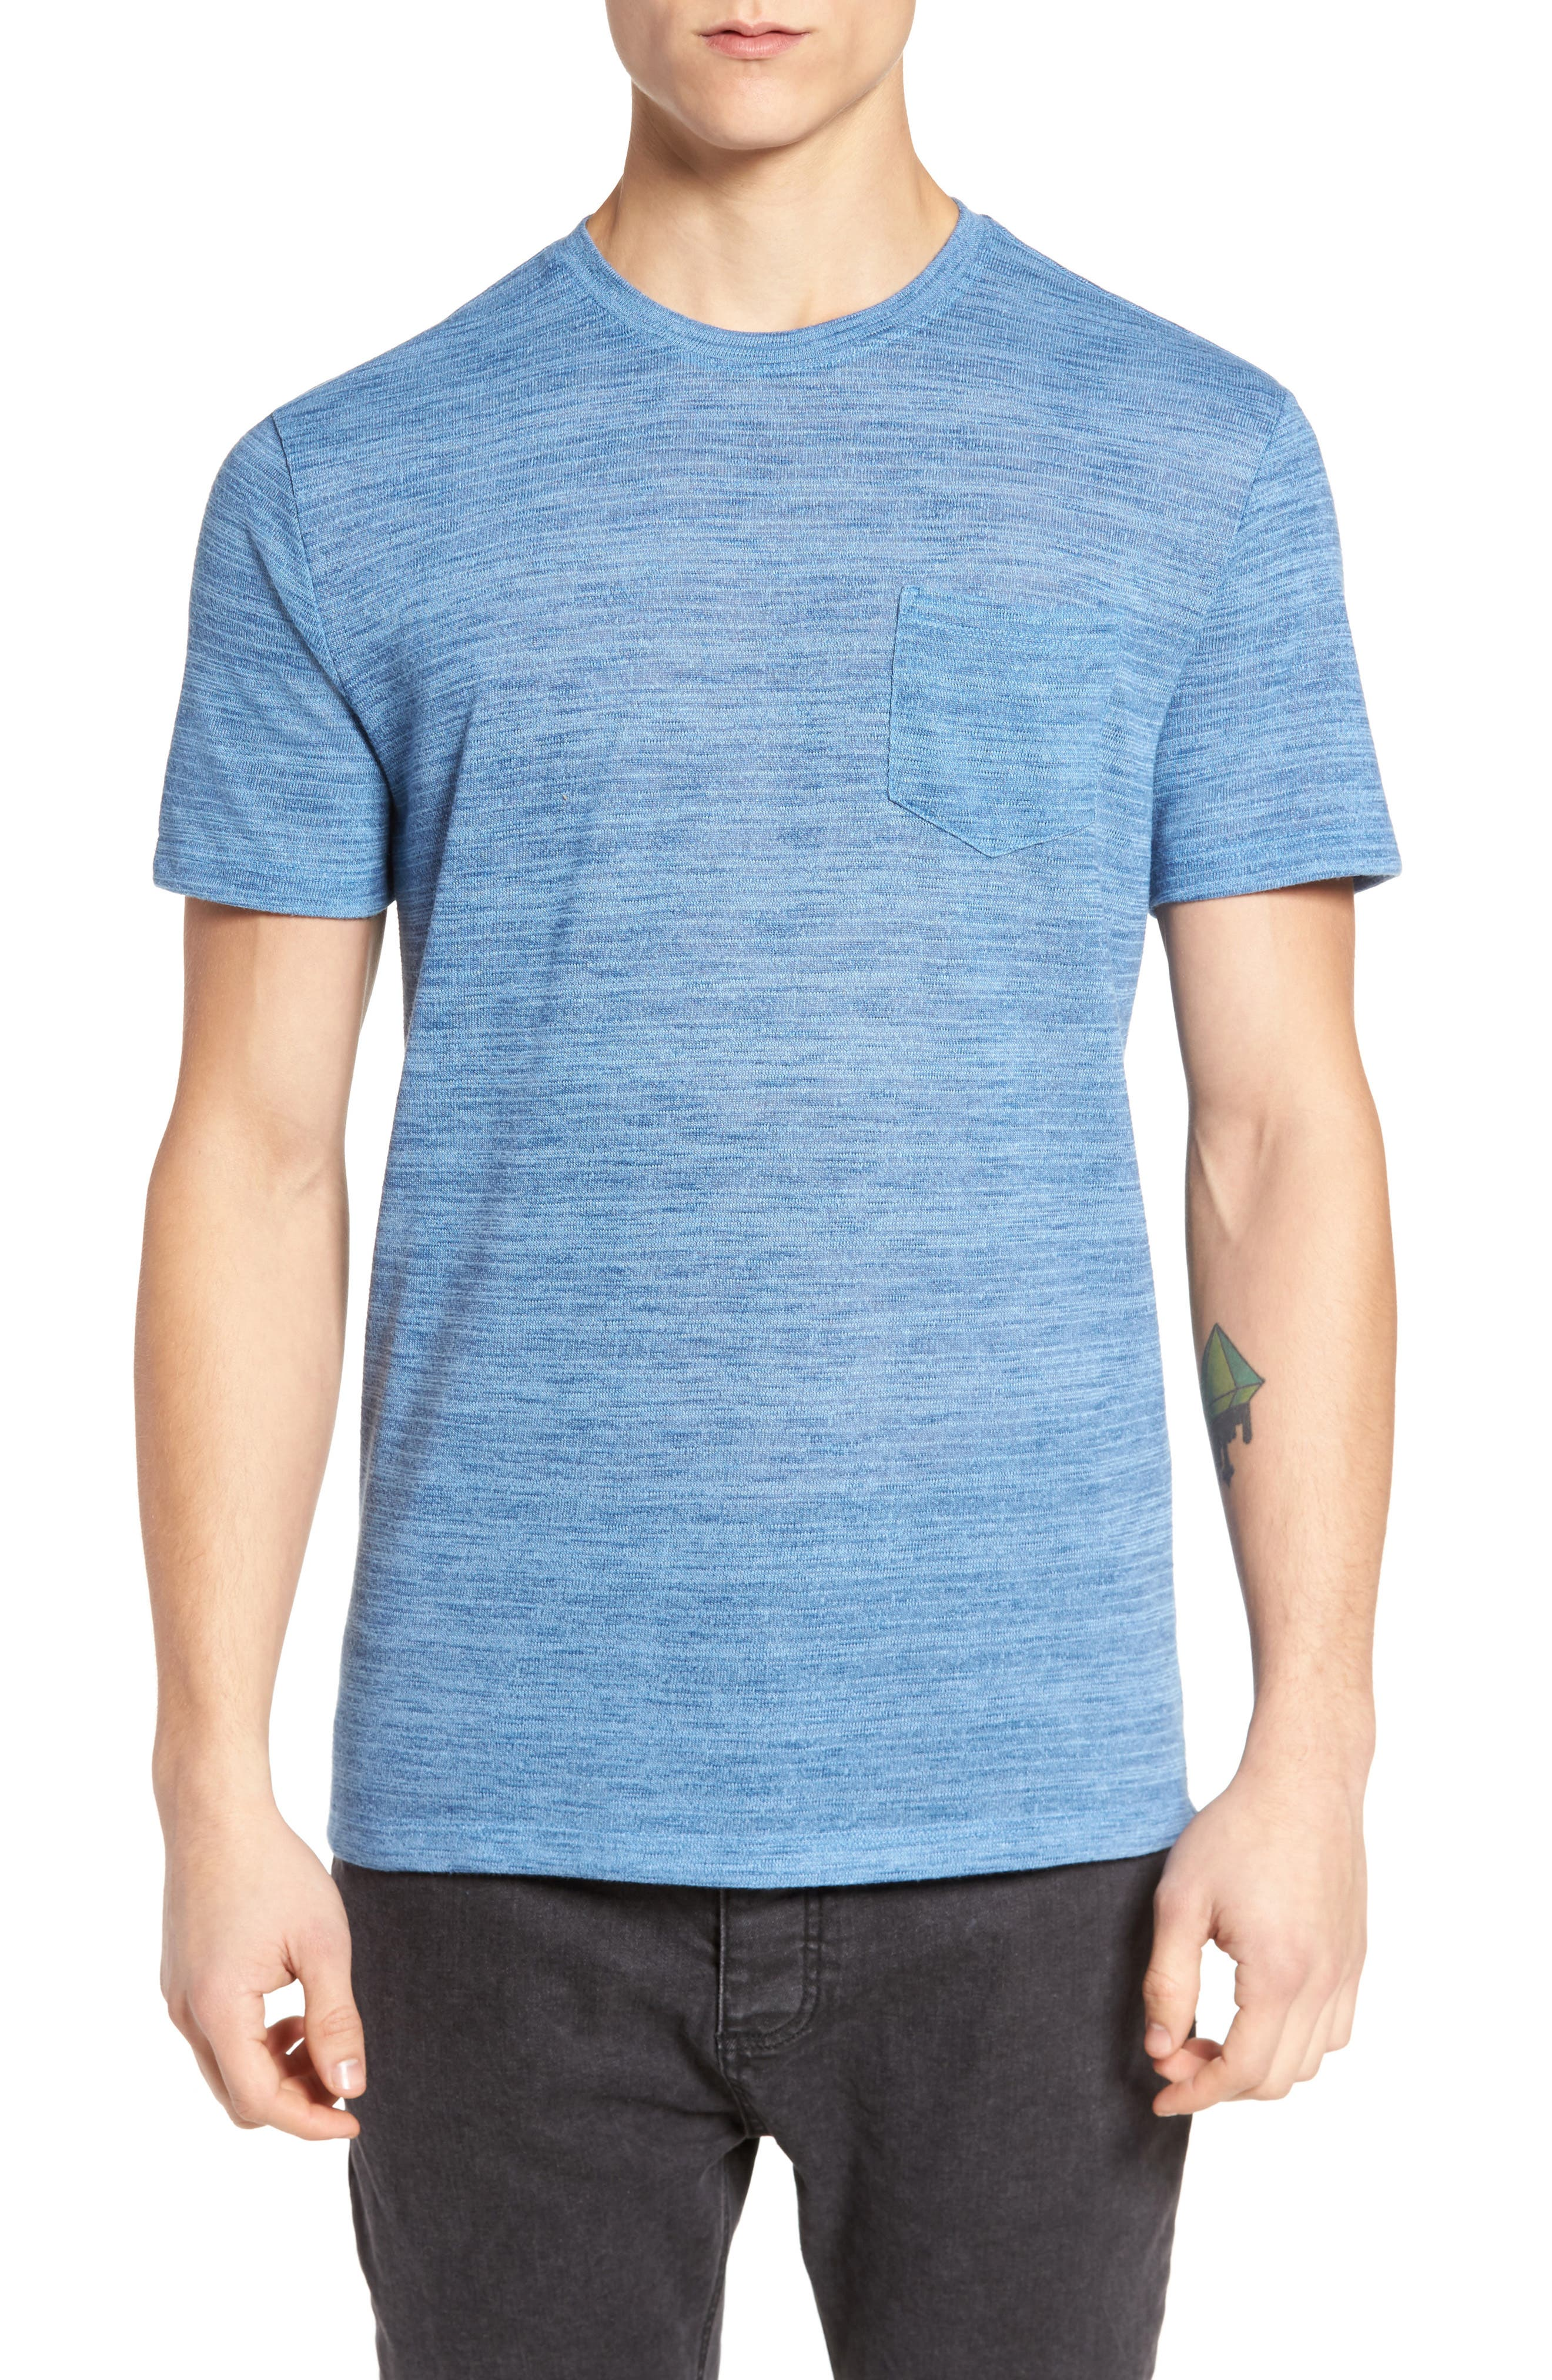 The Rail Slubbed Pocket T-Shirt (2 for $30)